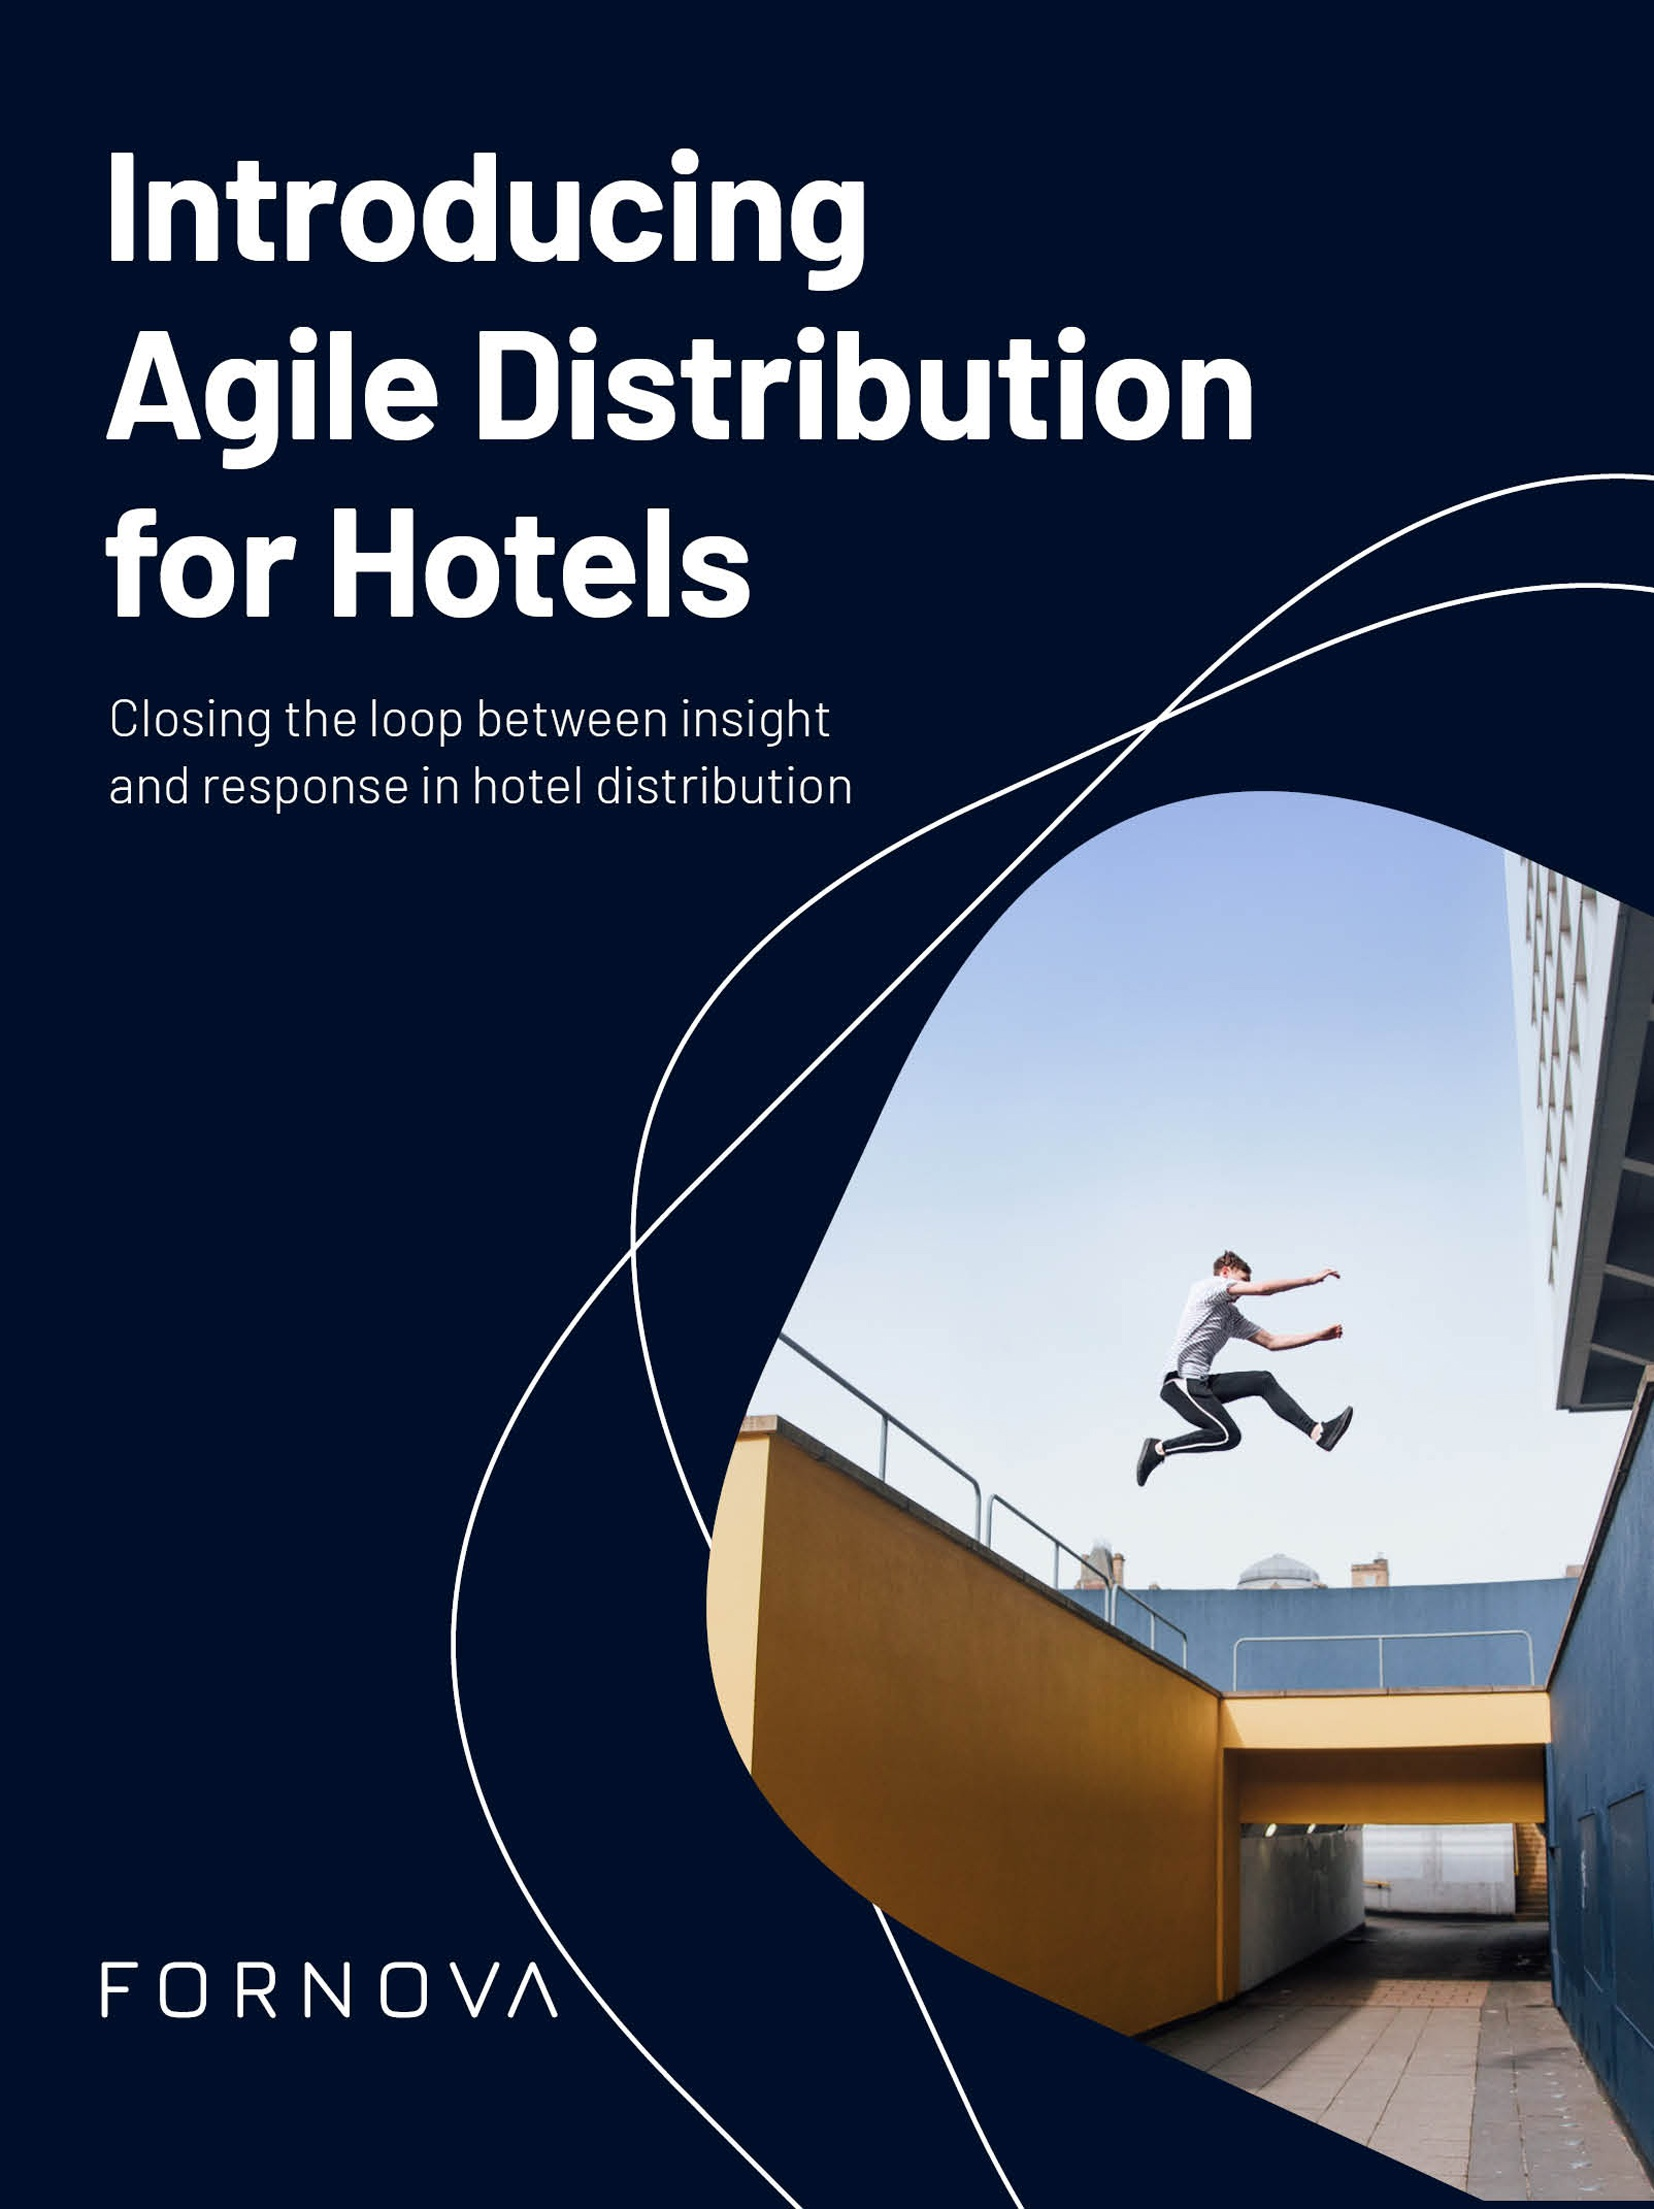 Agile Distribution for Hotels eBook